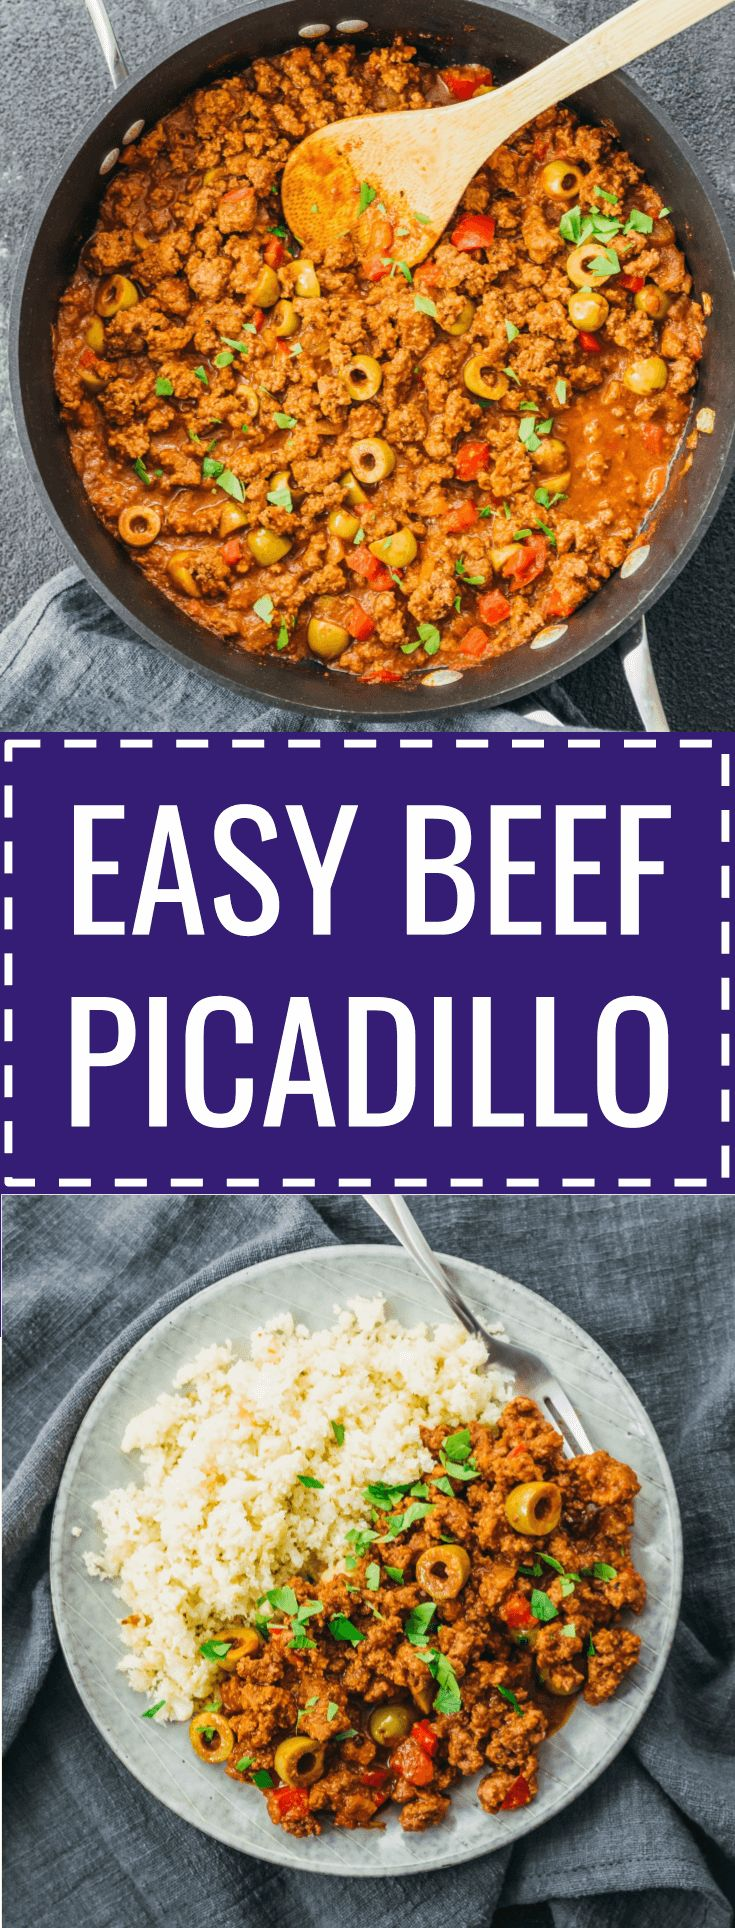 An easy beef picadillo stew recipe influenced by Cuban and Mexican cuisine. #beef #healthy mexicano / cubano / puerto rican / pinoy / filipino / turkey / receta / costa rica / de res / mexico / keto / low carb / diet / atkins / induction / meals / recipes / easy / dinner / lunch / foods / healthy / gluten free / chicken / spanish / authentic / sides / simple / stove top / best / quick / classic / hearty / ground